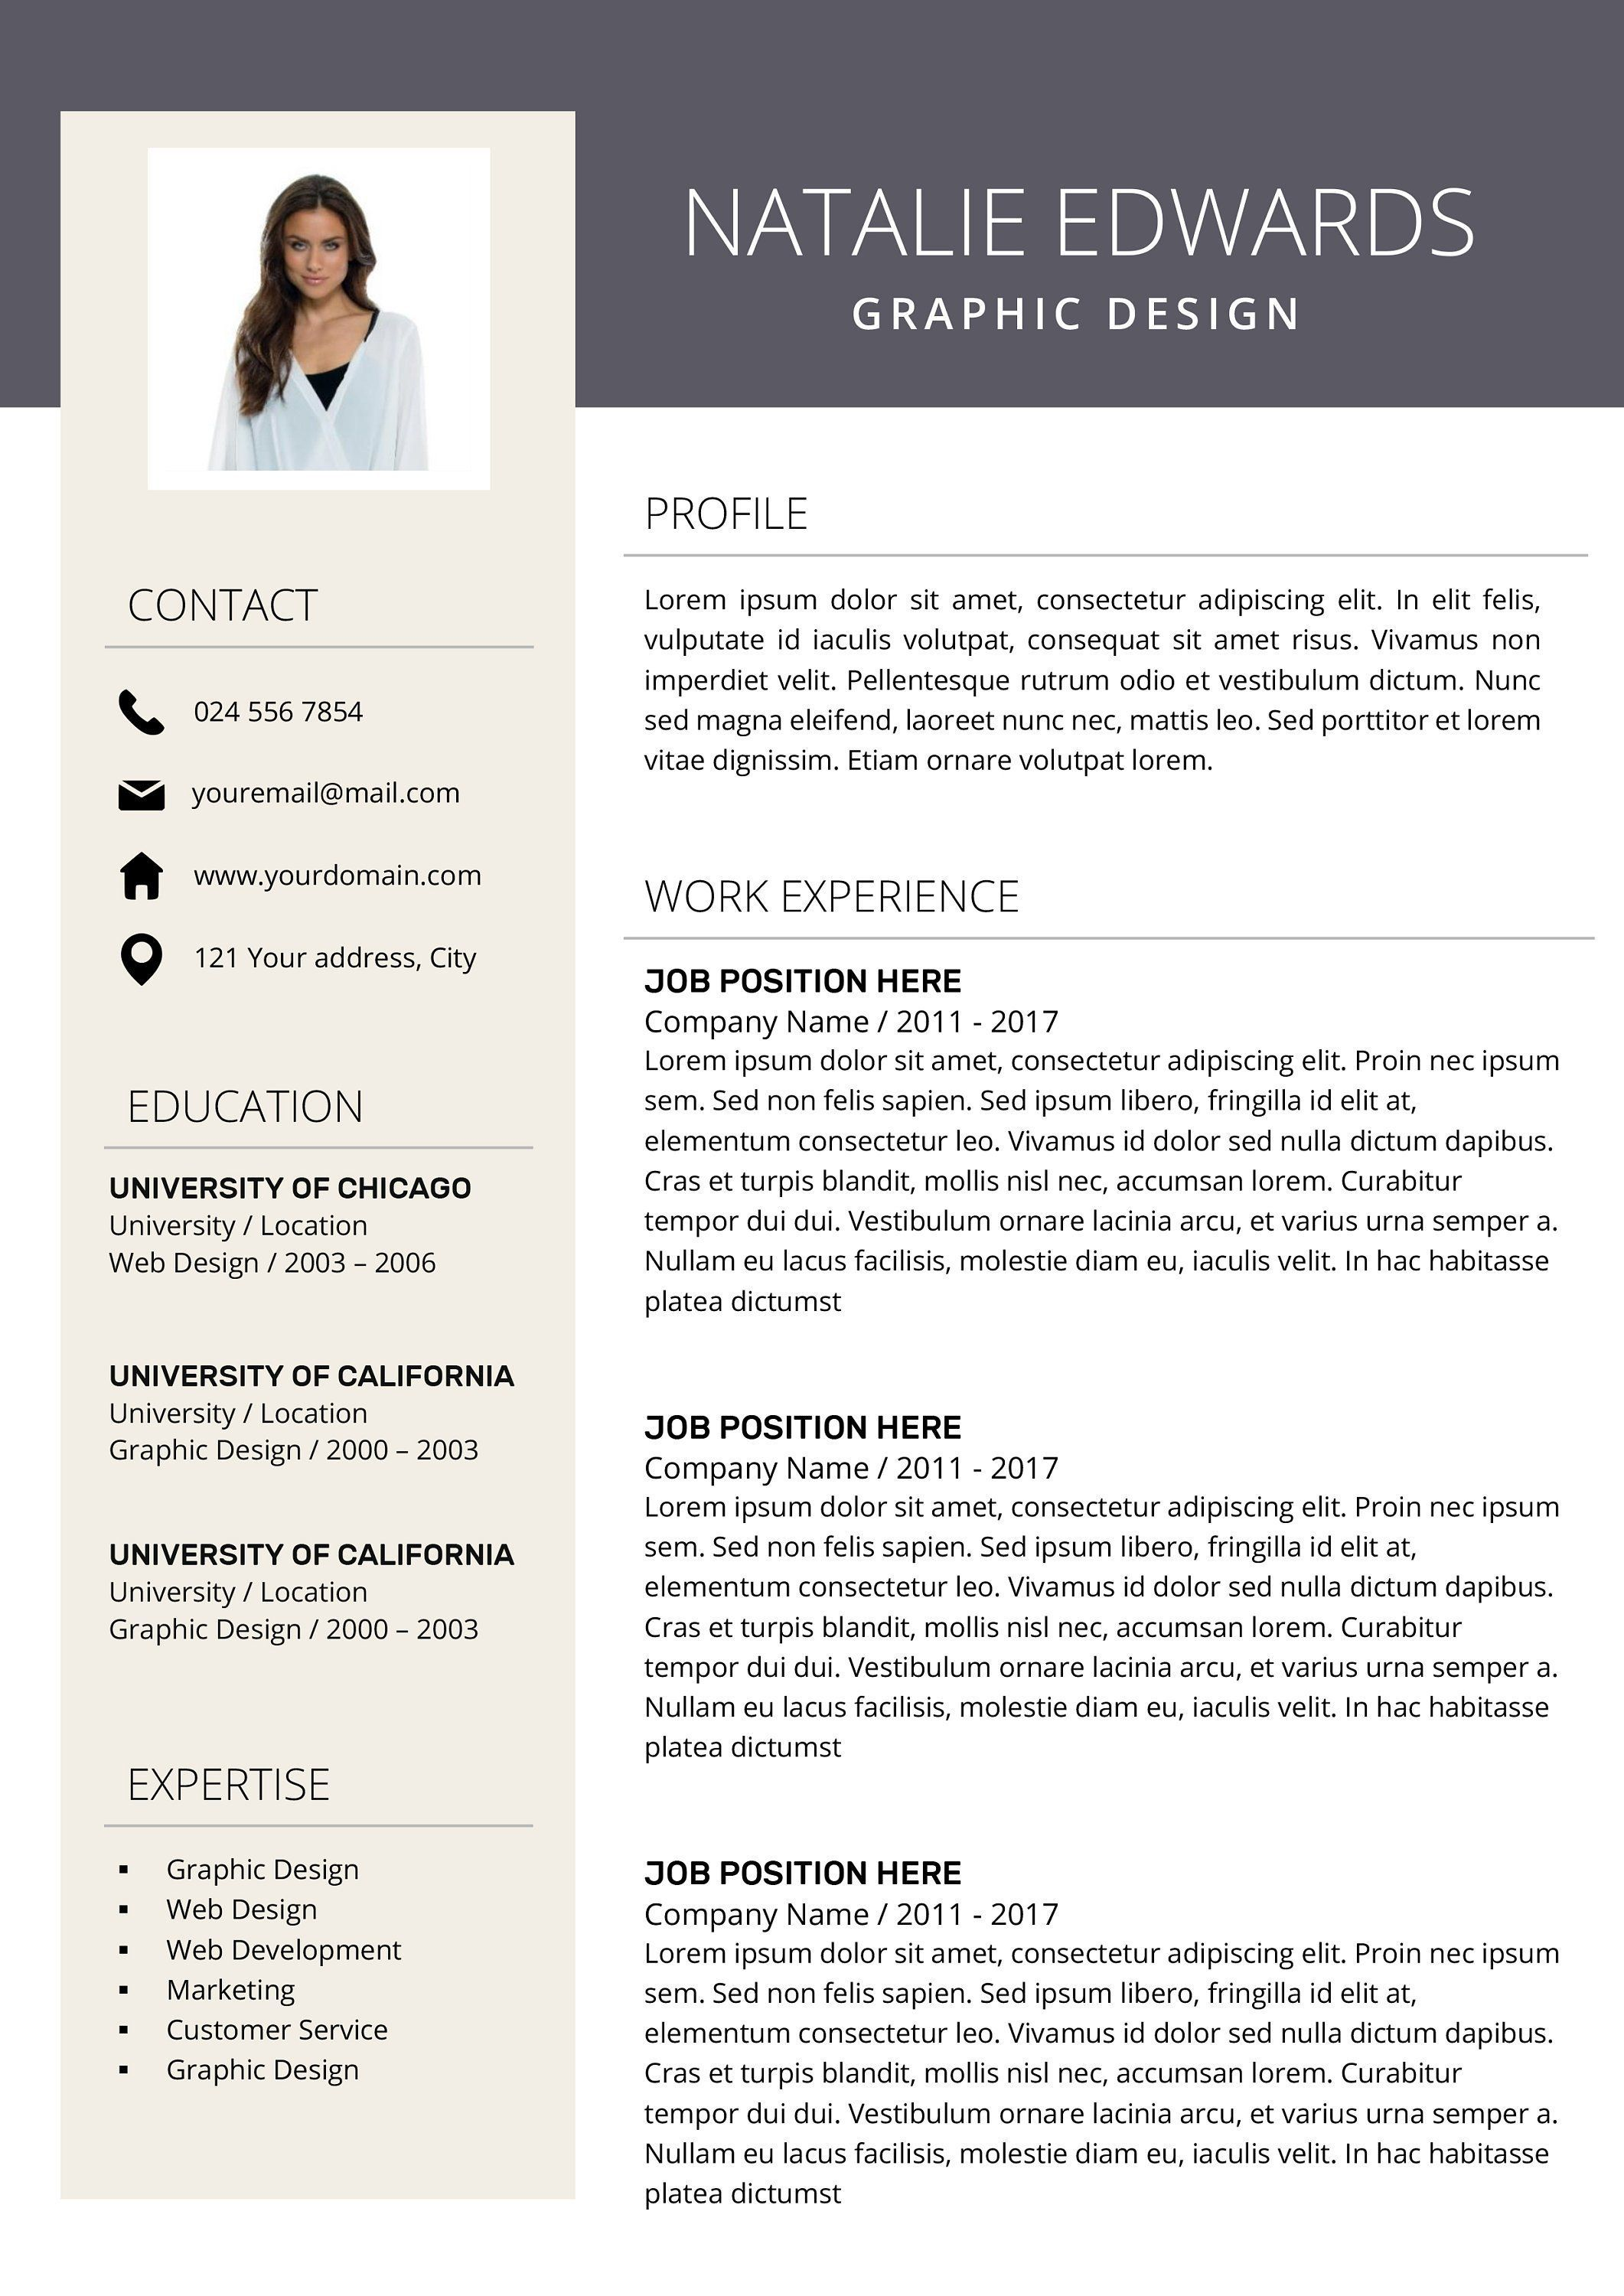 50 Free Cv Resume Templates Best For 2019 Graphic Elements Free Resume Template Download Resume Template Professional Cv Resume Template